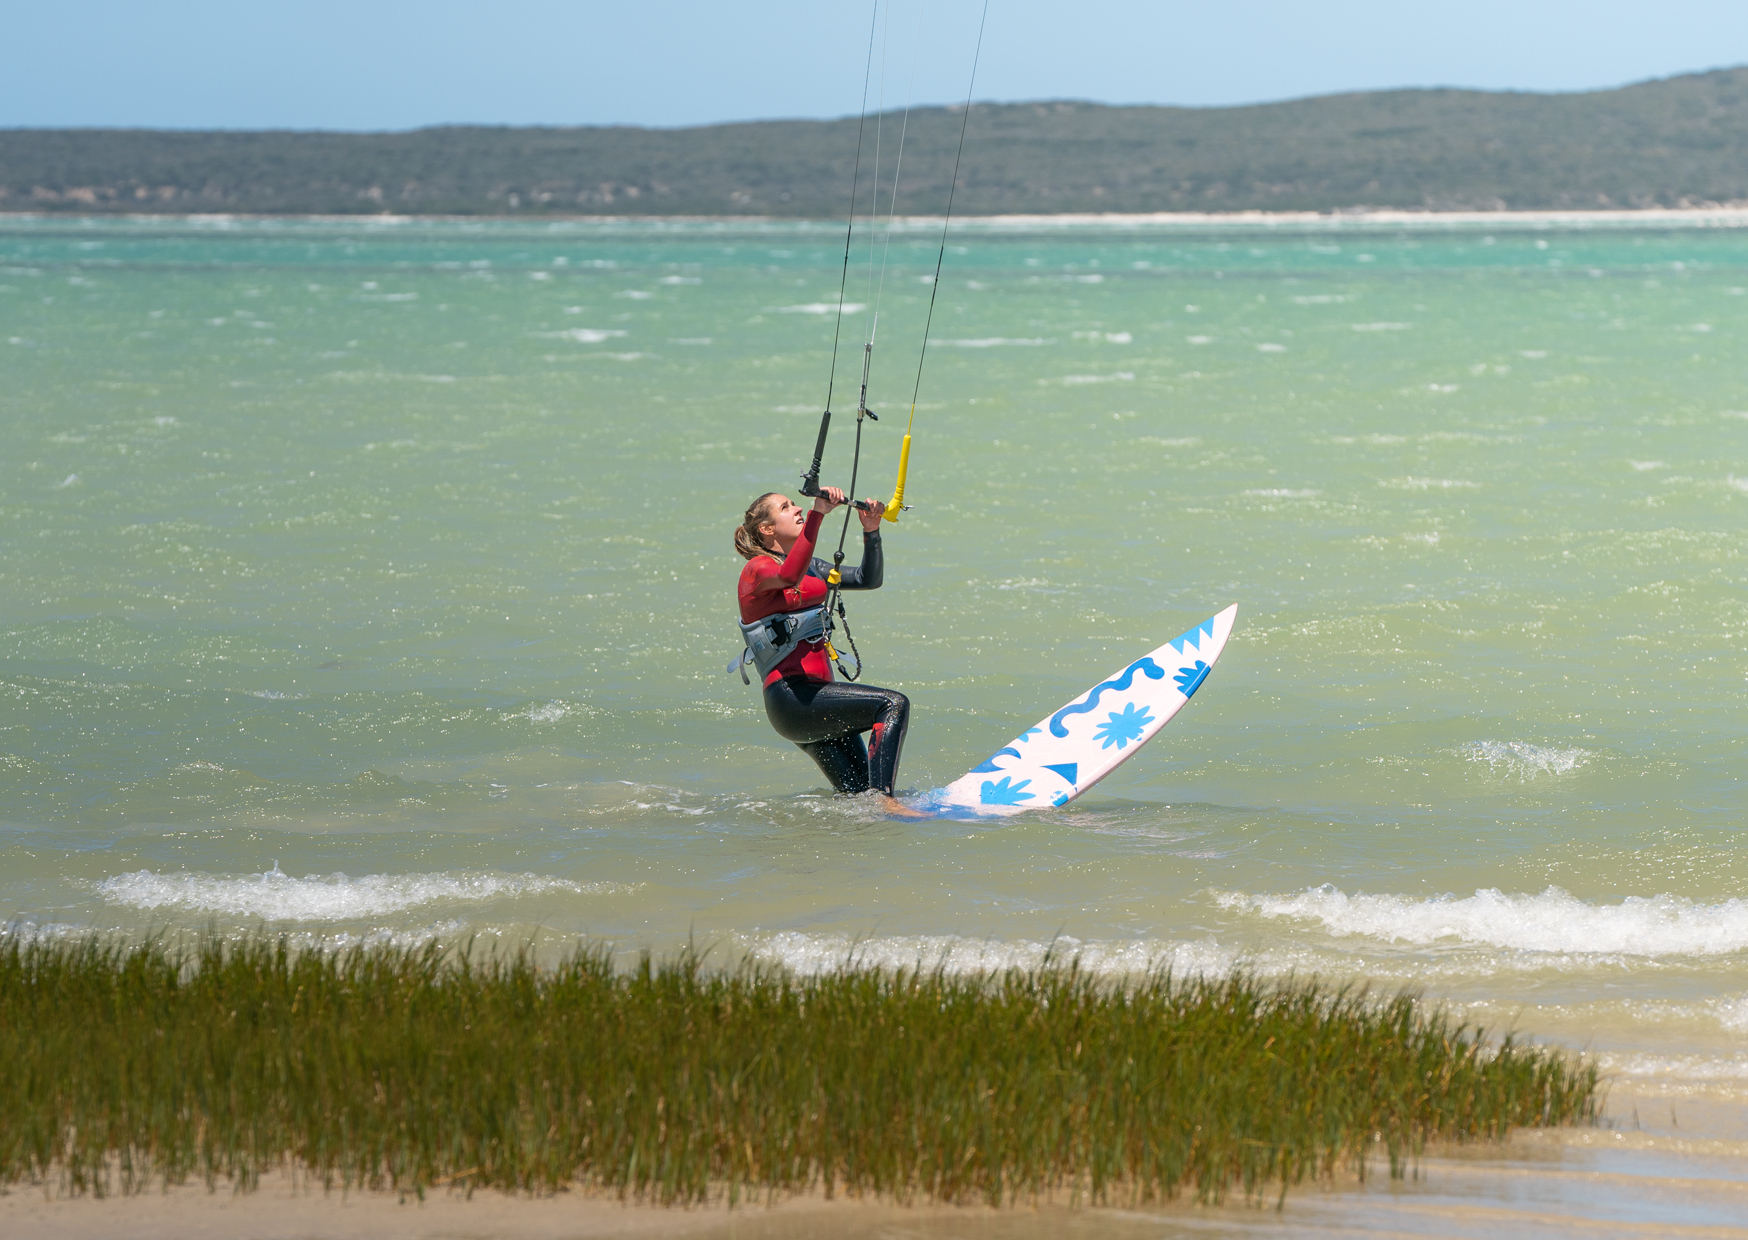 Kite surfing Langebaan.jpg